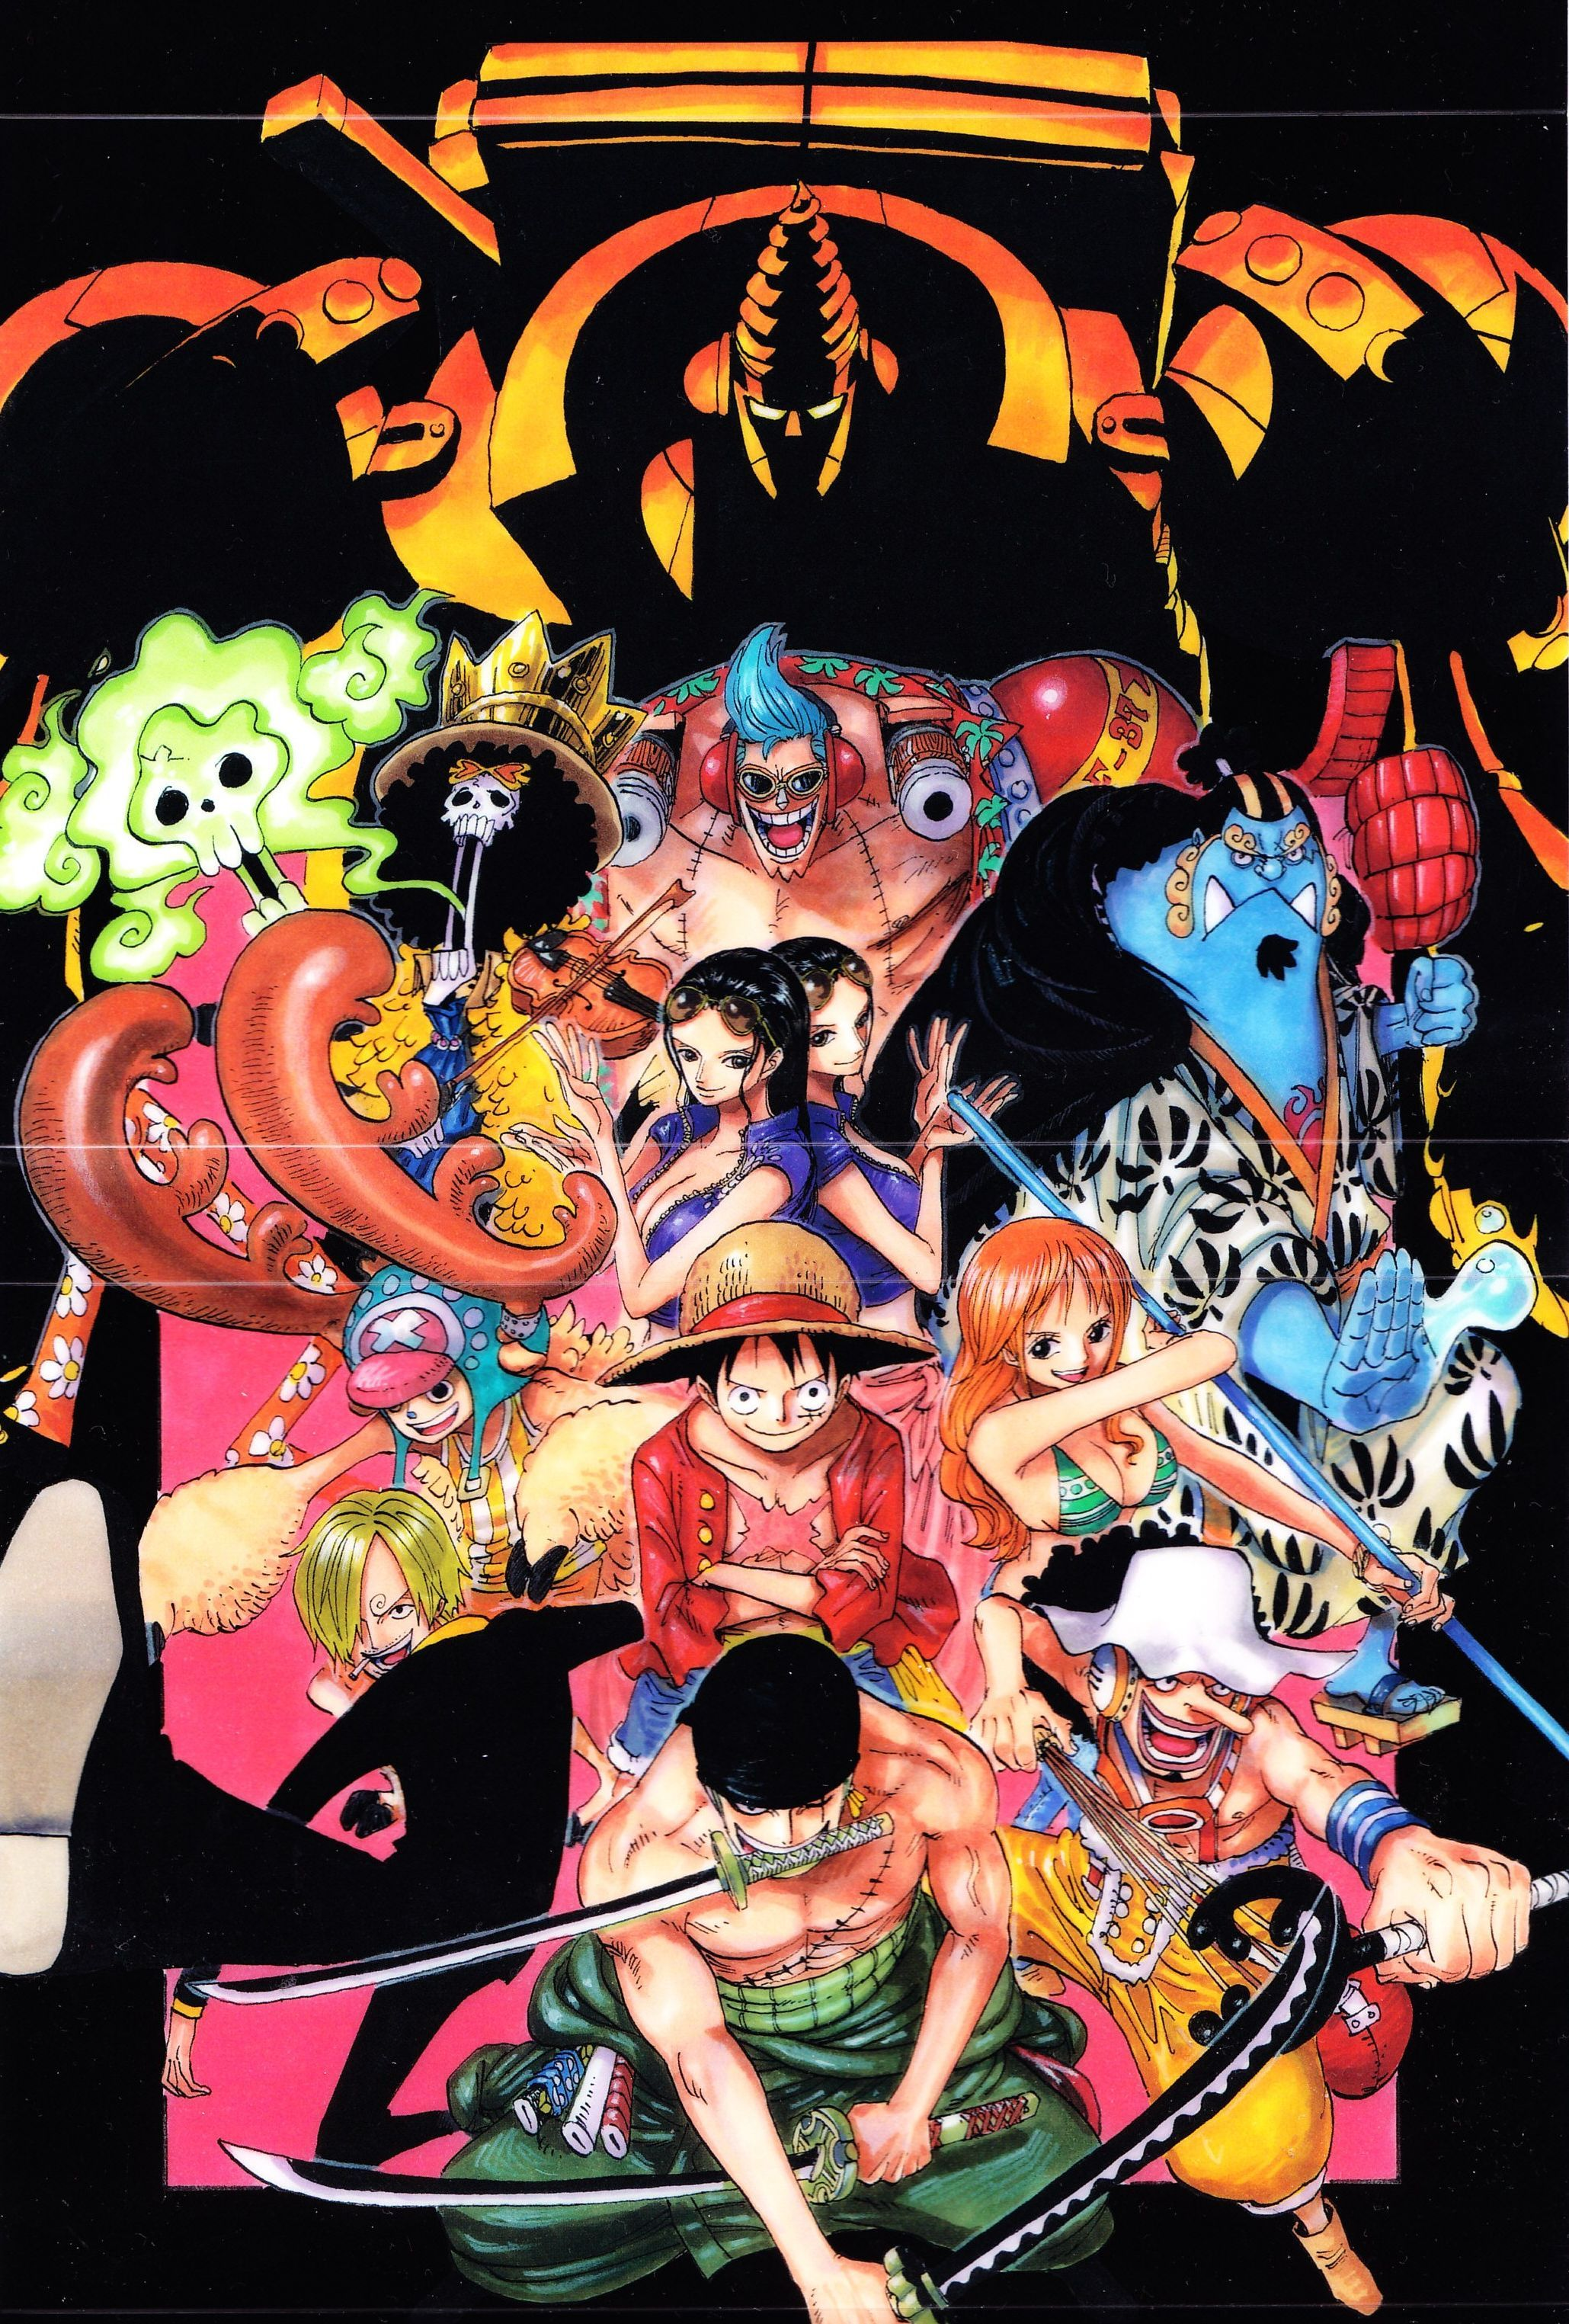 Download One Piece One PIece book cover (2059x3049